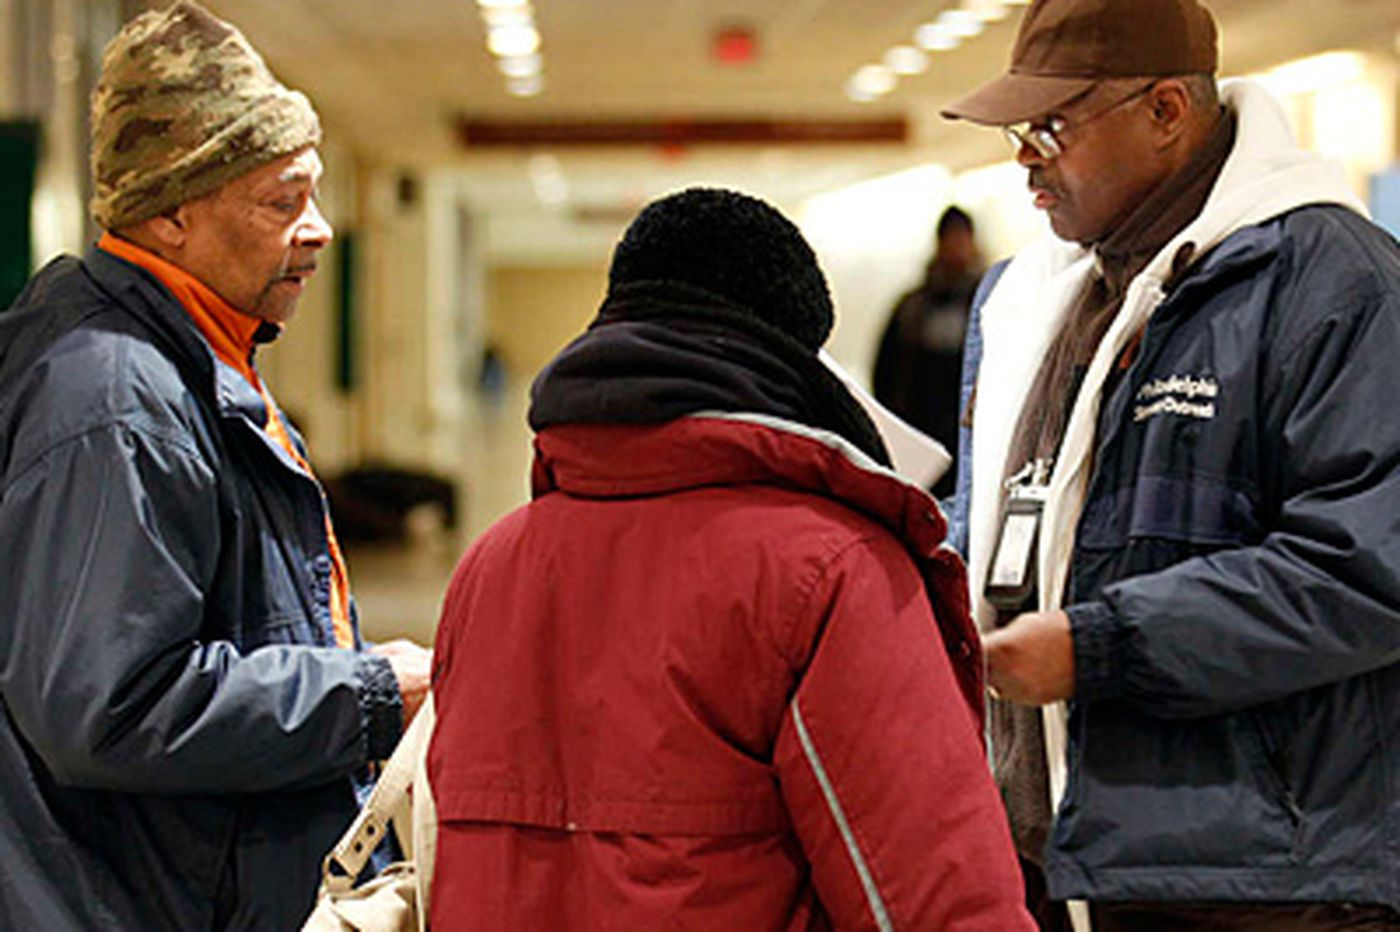 Outreach workers tend to homeless on frigid night